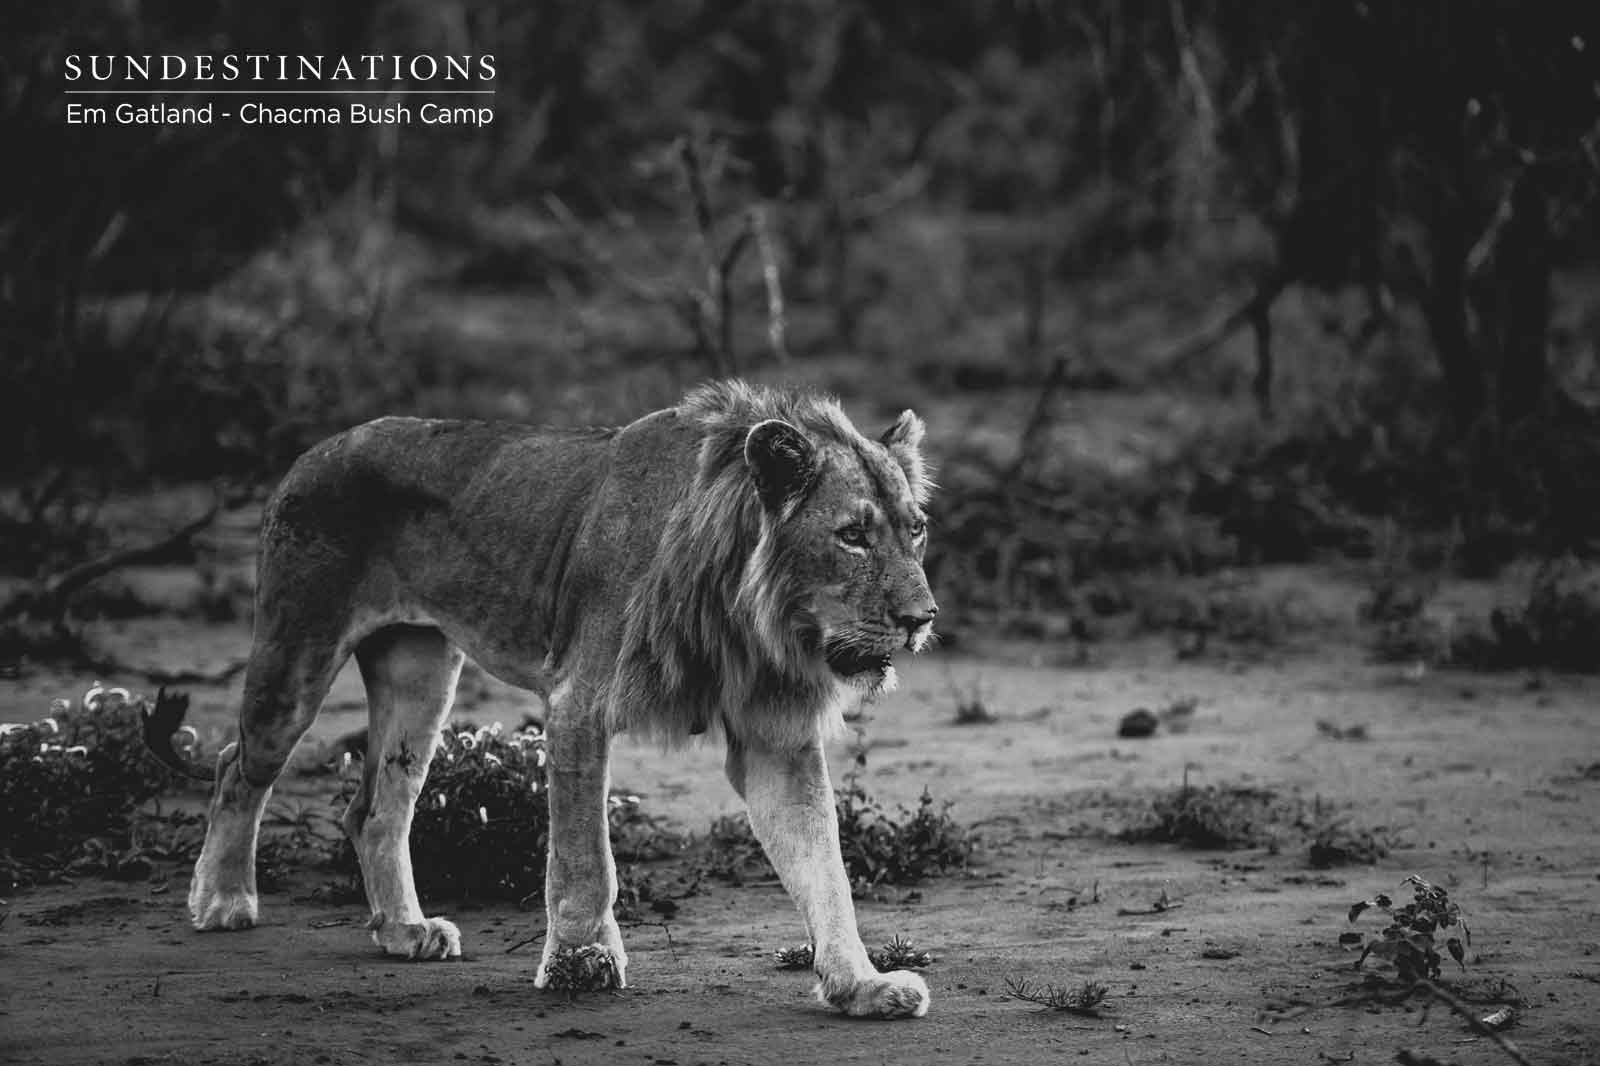 Male Lion at Chacma